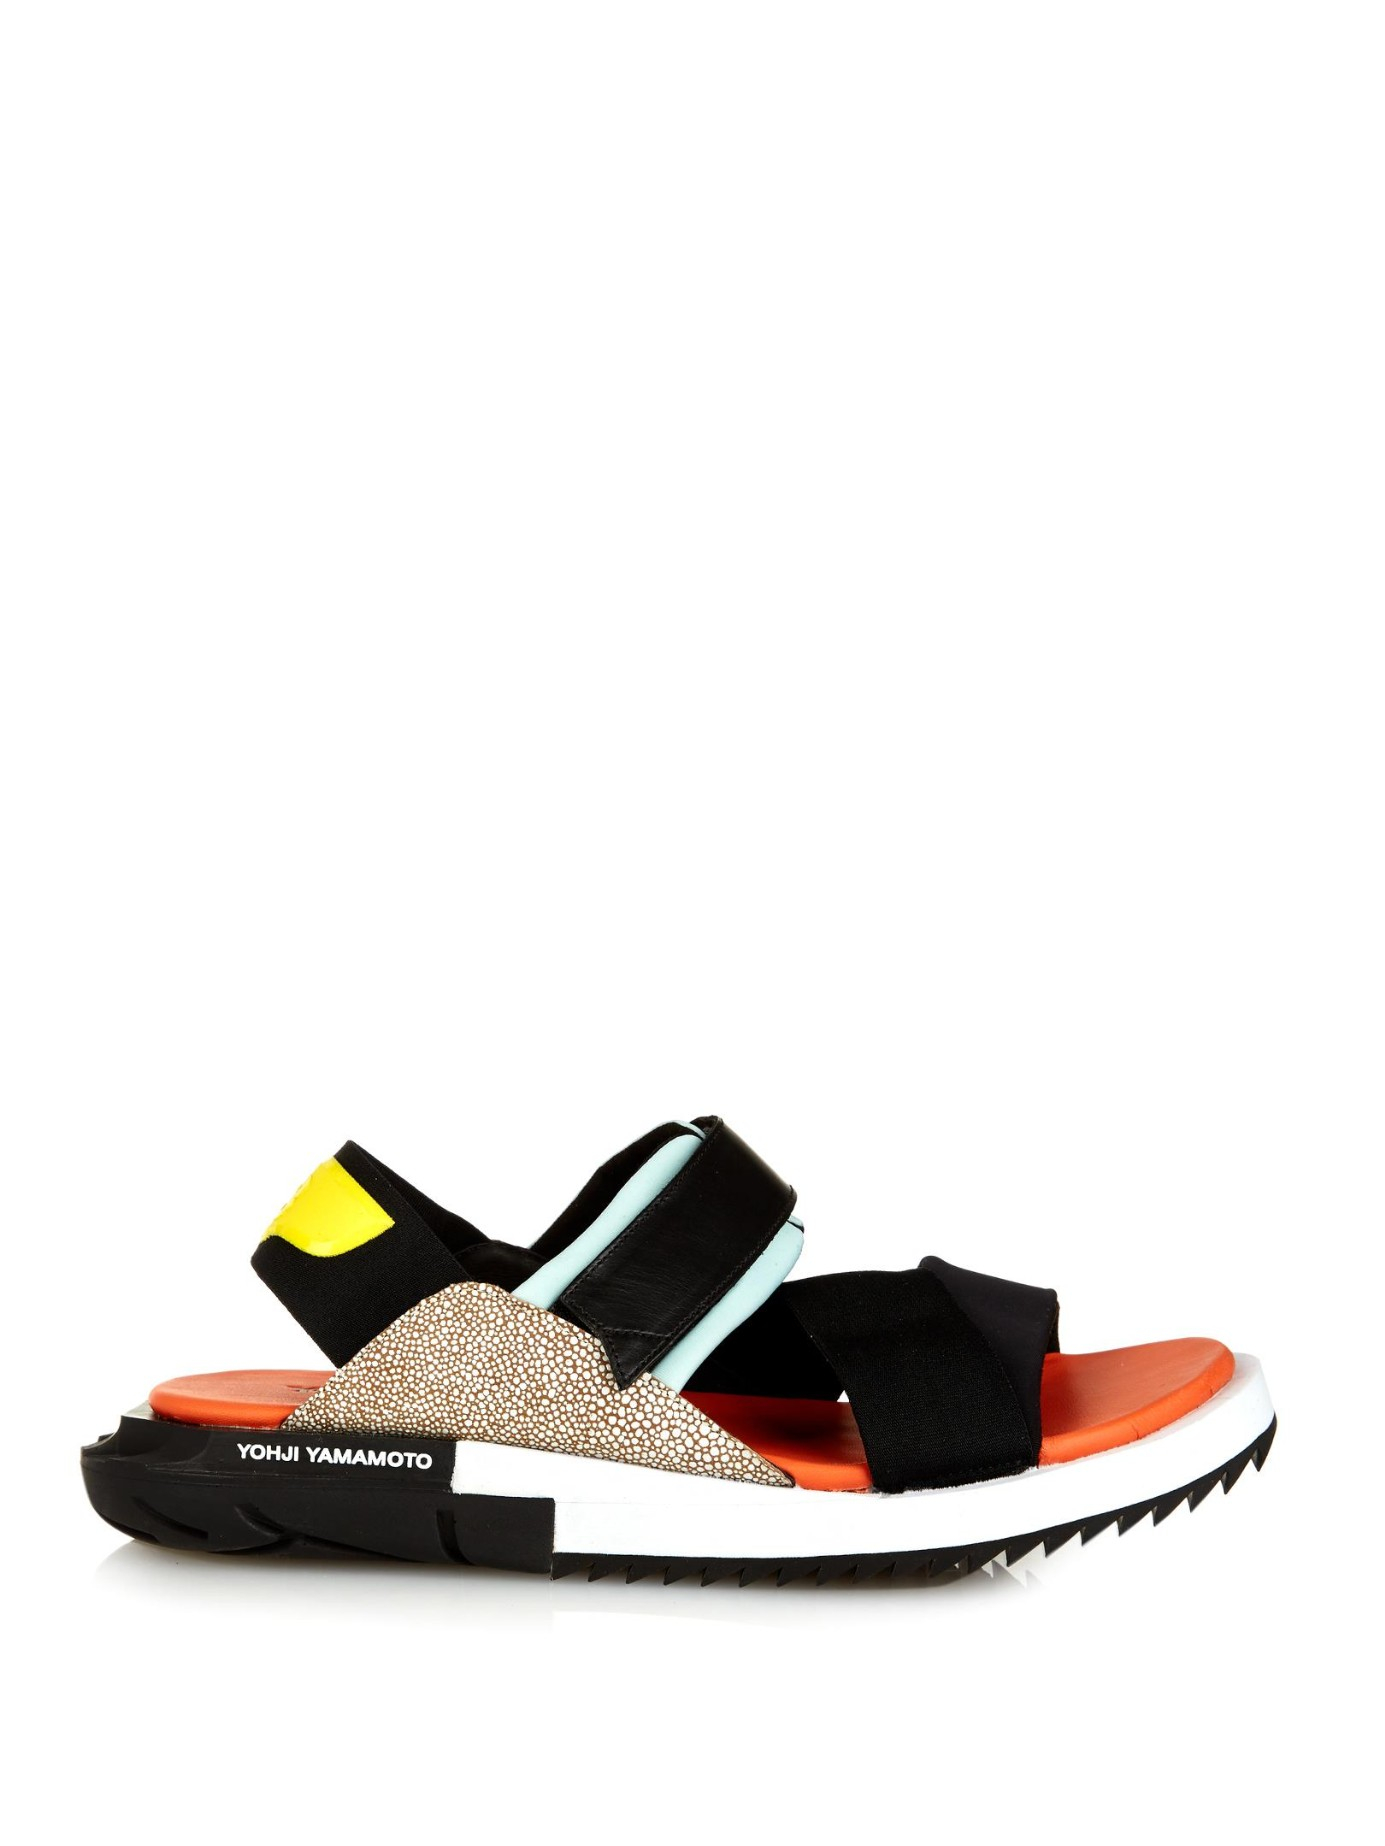 a8f35455d Y-3 Kaohe Neoprene And Leather Sandals for Men - Lyst